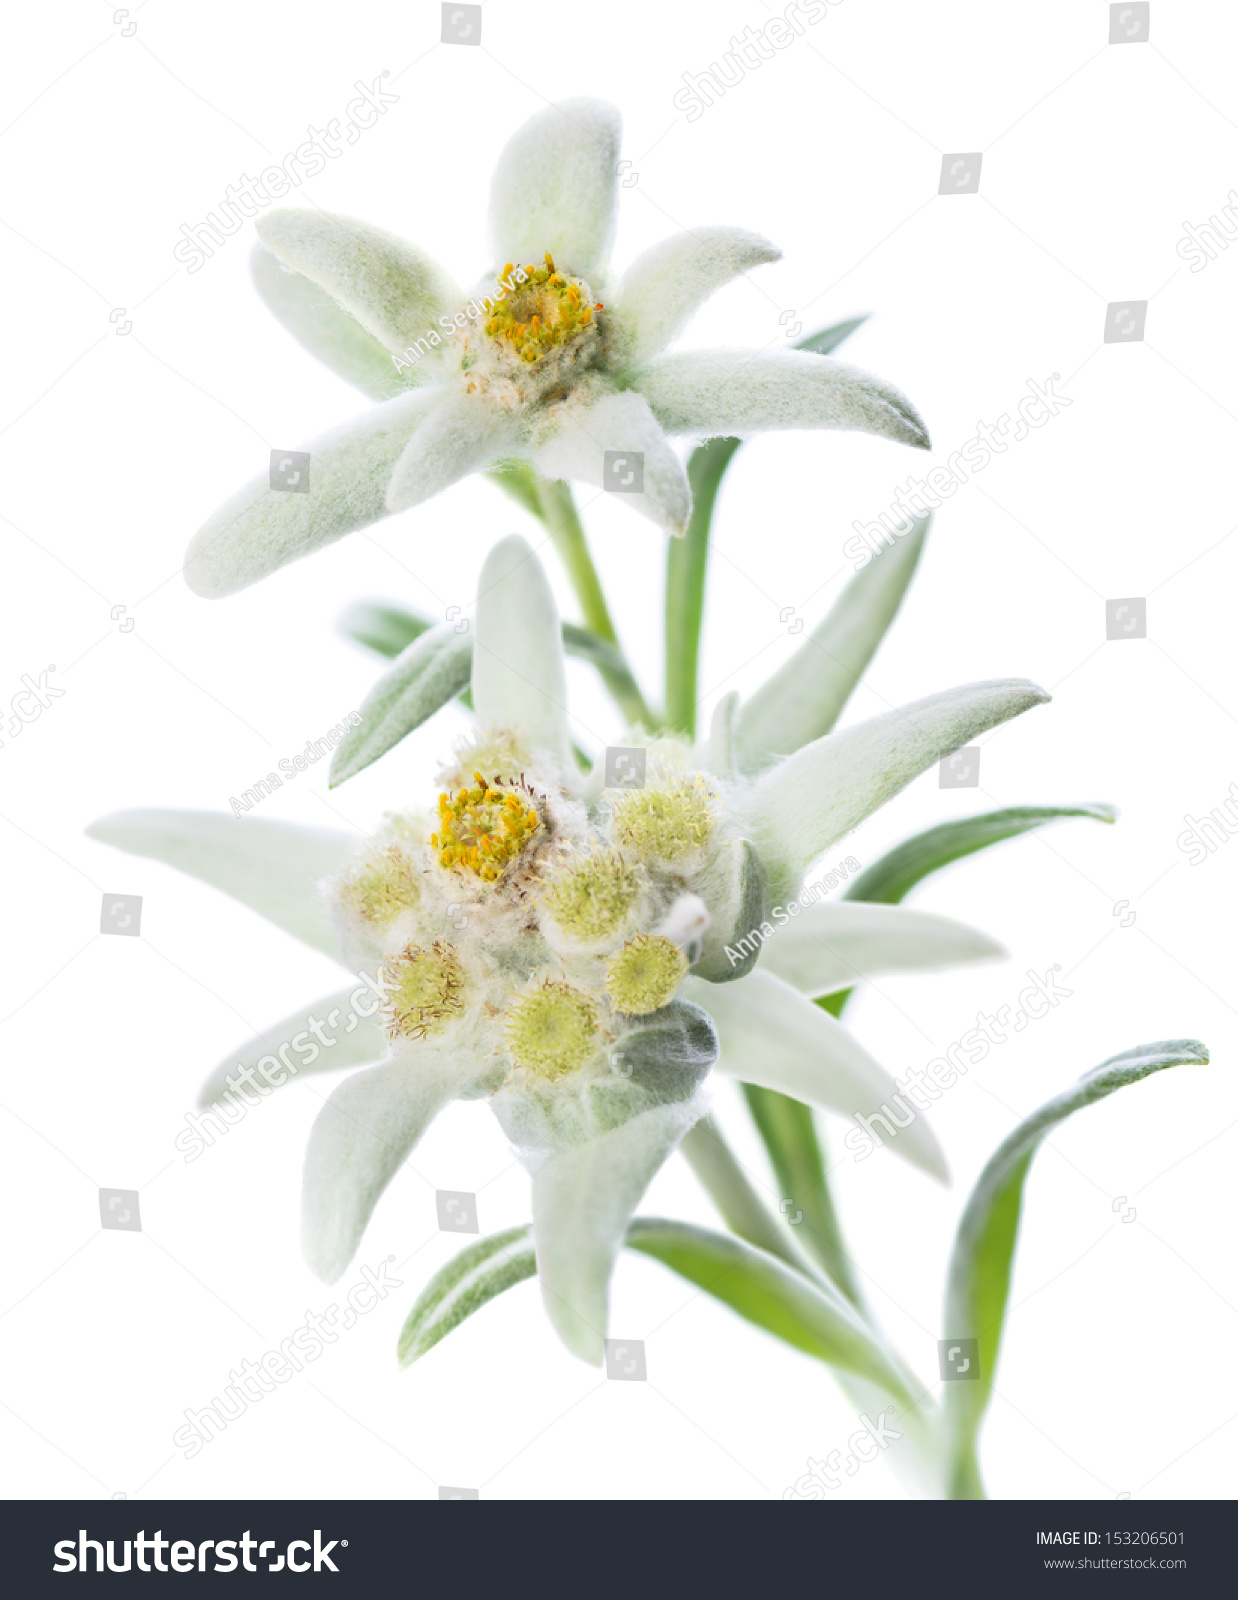 edelweiss flowers  flower, Natural flower